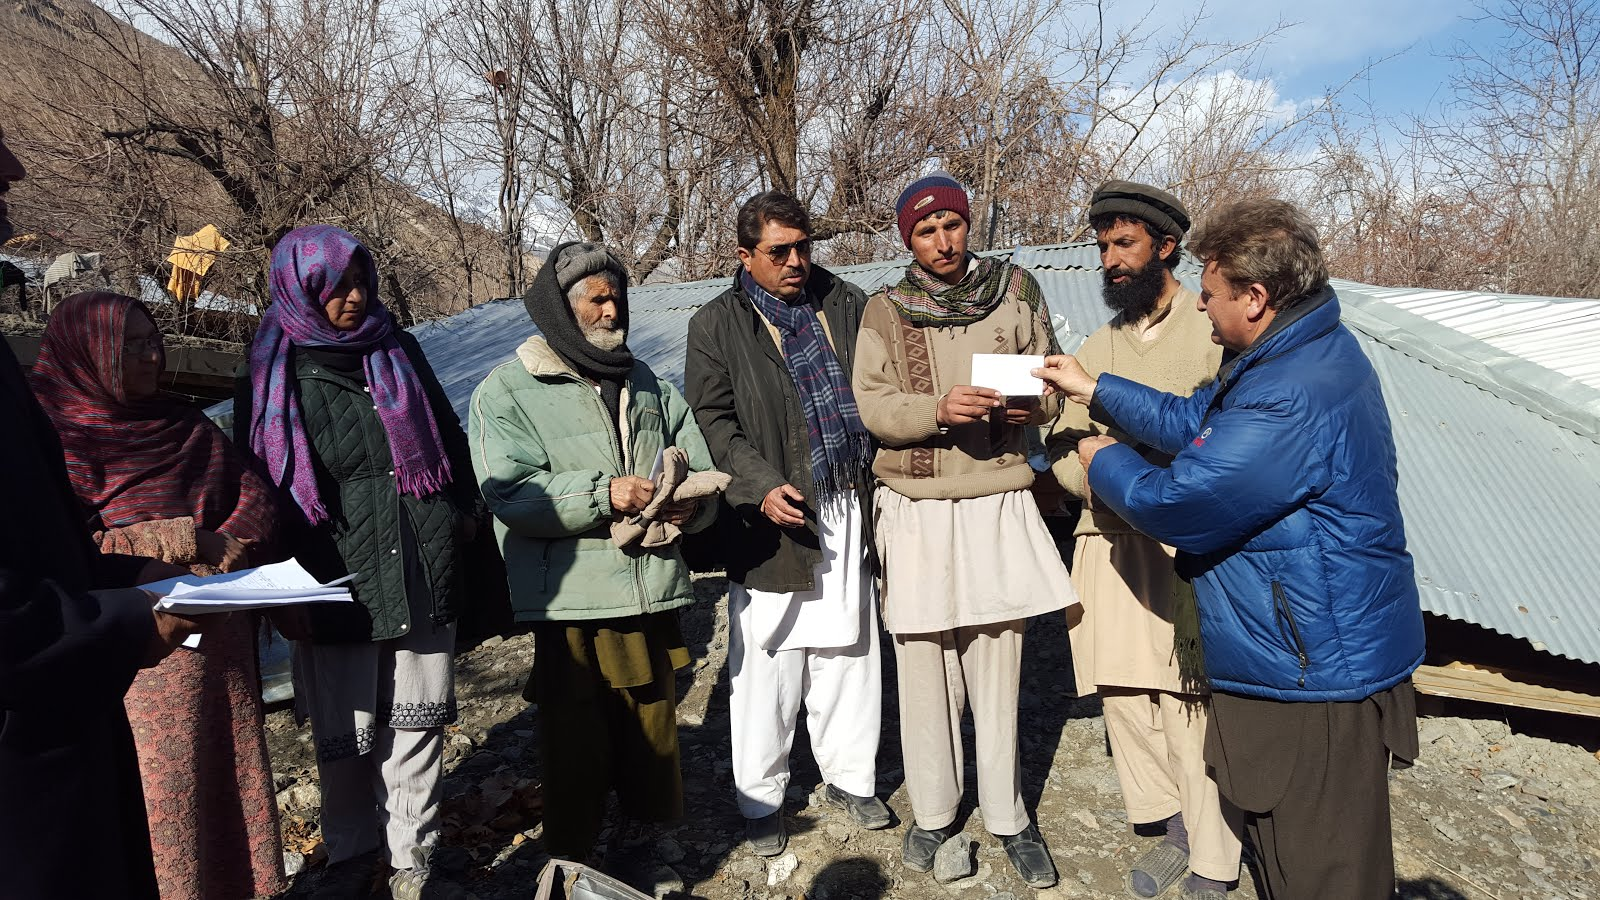 AHF RELIEF AID IN MUJGOL MULKHOW UPPER CHITRAL